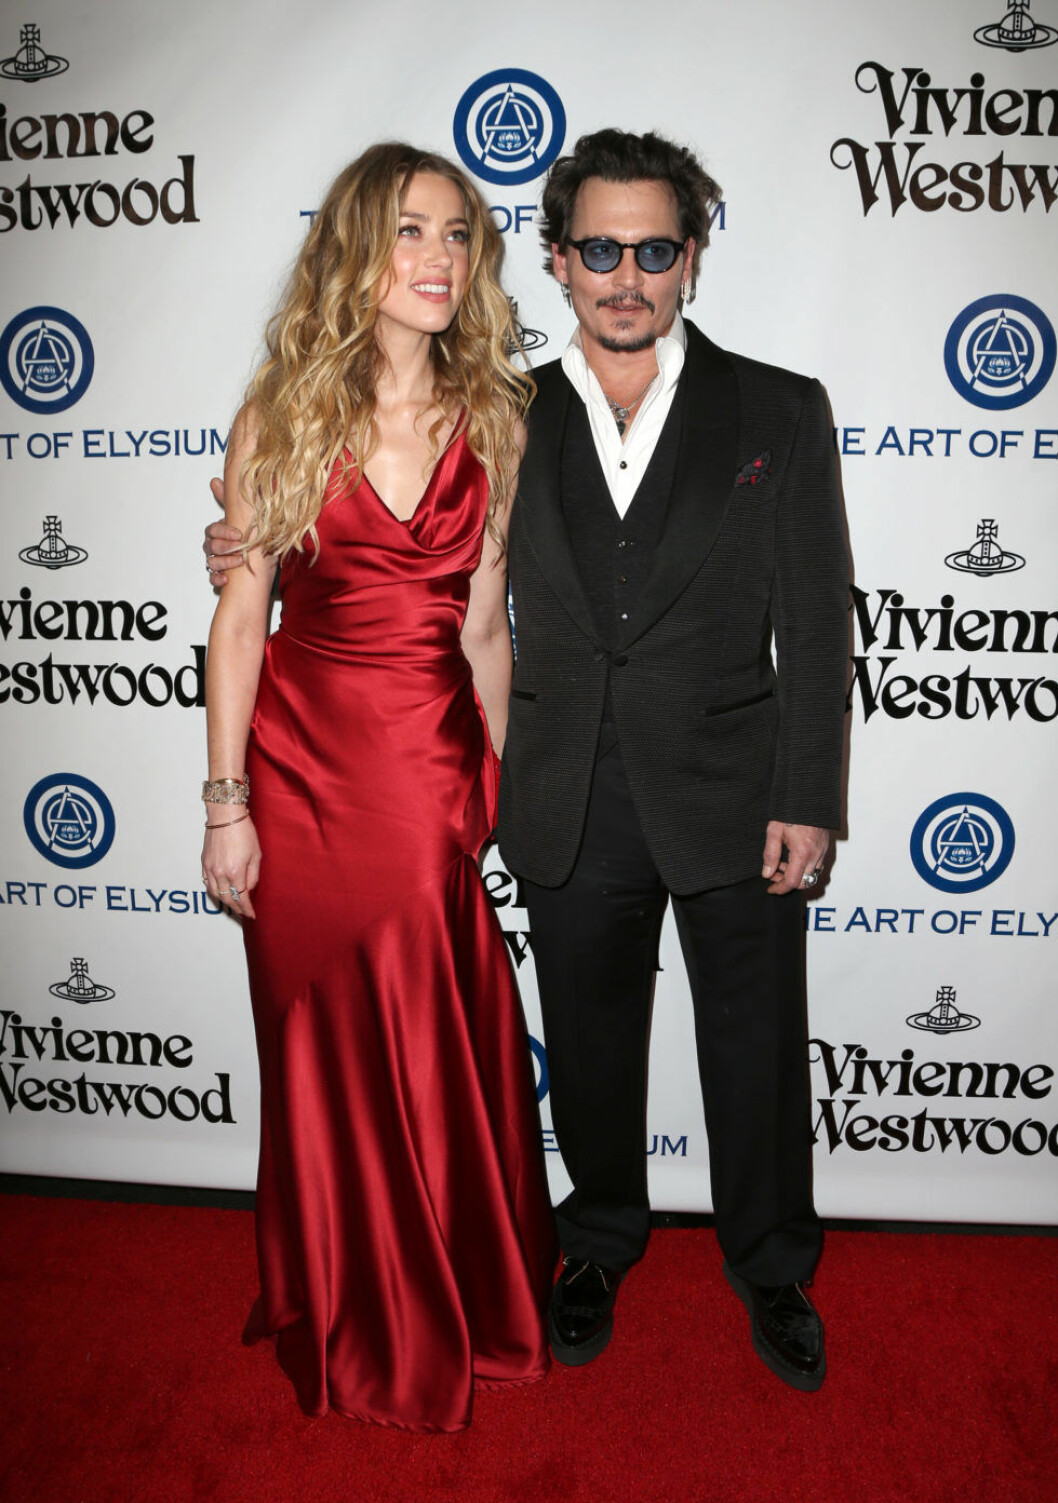 The Art of Elysium Presents Vivienne Westwood & Andreas Kronthaler's 2016 HEAVEN GalaFeaturing: Amber Heard, Johnny DeppWhere: Culver City, California, United StatesWhen: 10 Jan 2016Credit: FayesVision/WENN.com